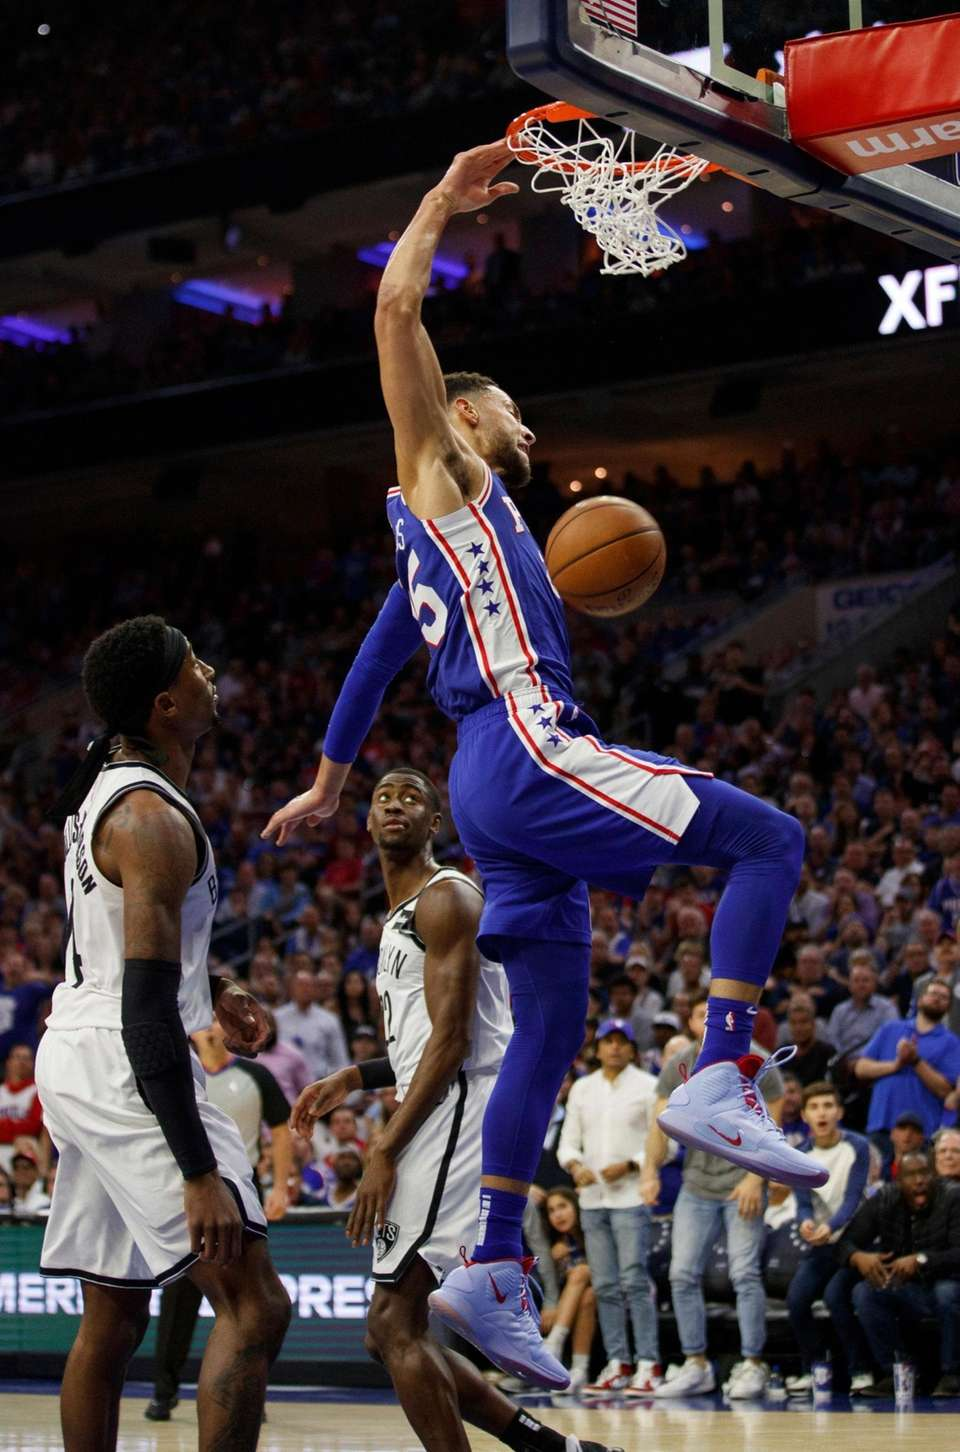 The 76ers' Ben Simmons, right, dunks the ball